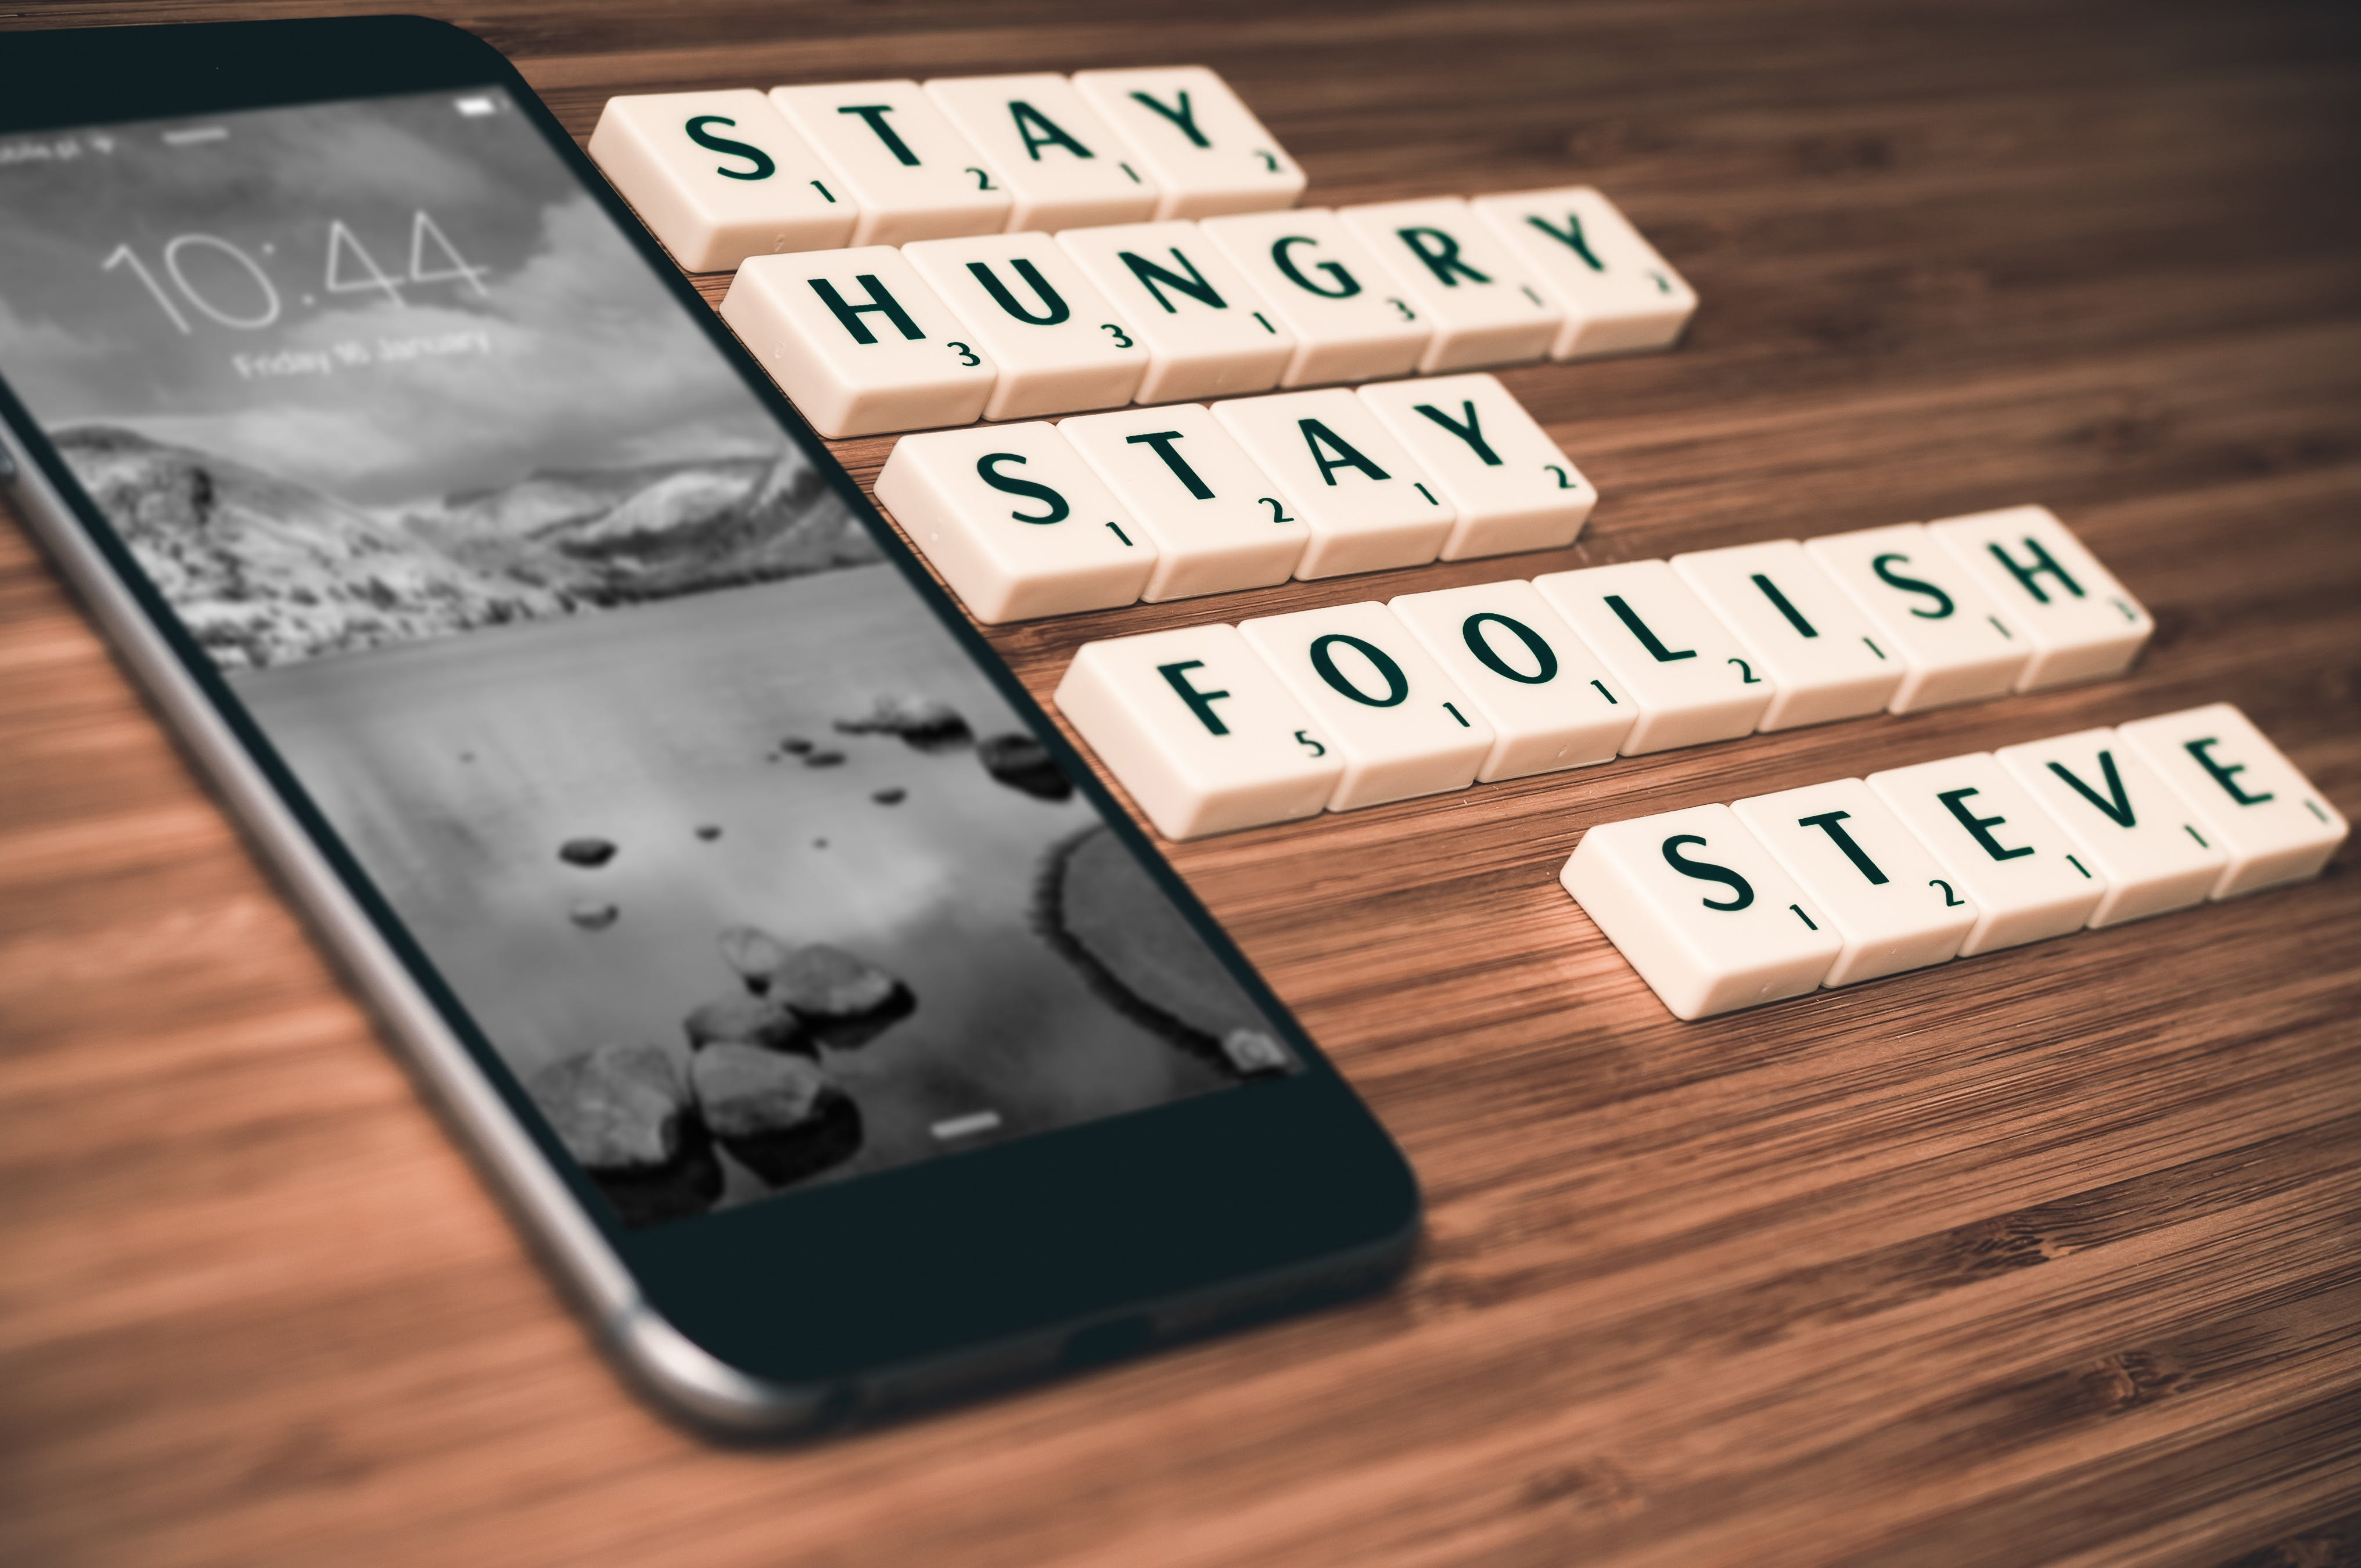 Turned-on Space Gray Iphone 6 Beside Scrabble Chip With Stay Hungry Stay Foolish Steve Text on Table